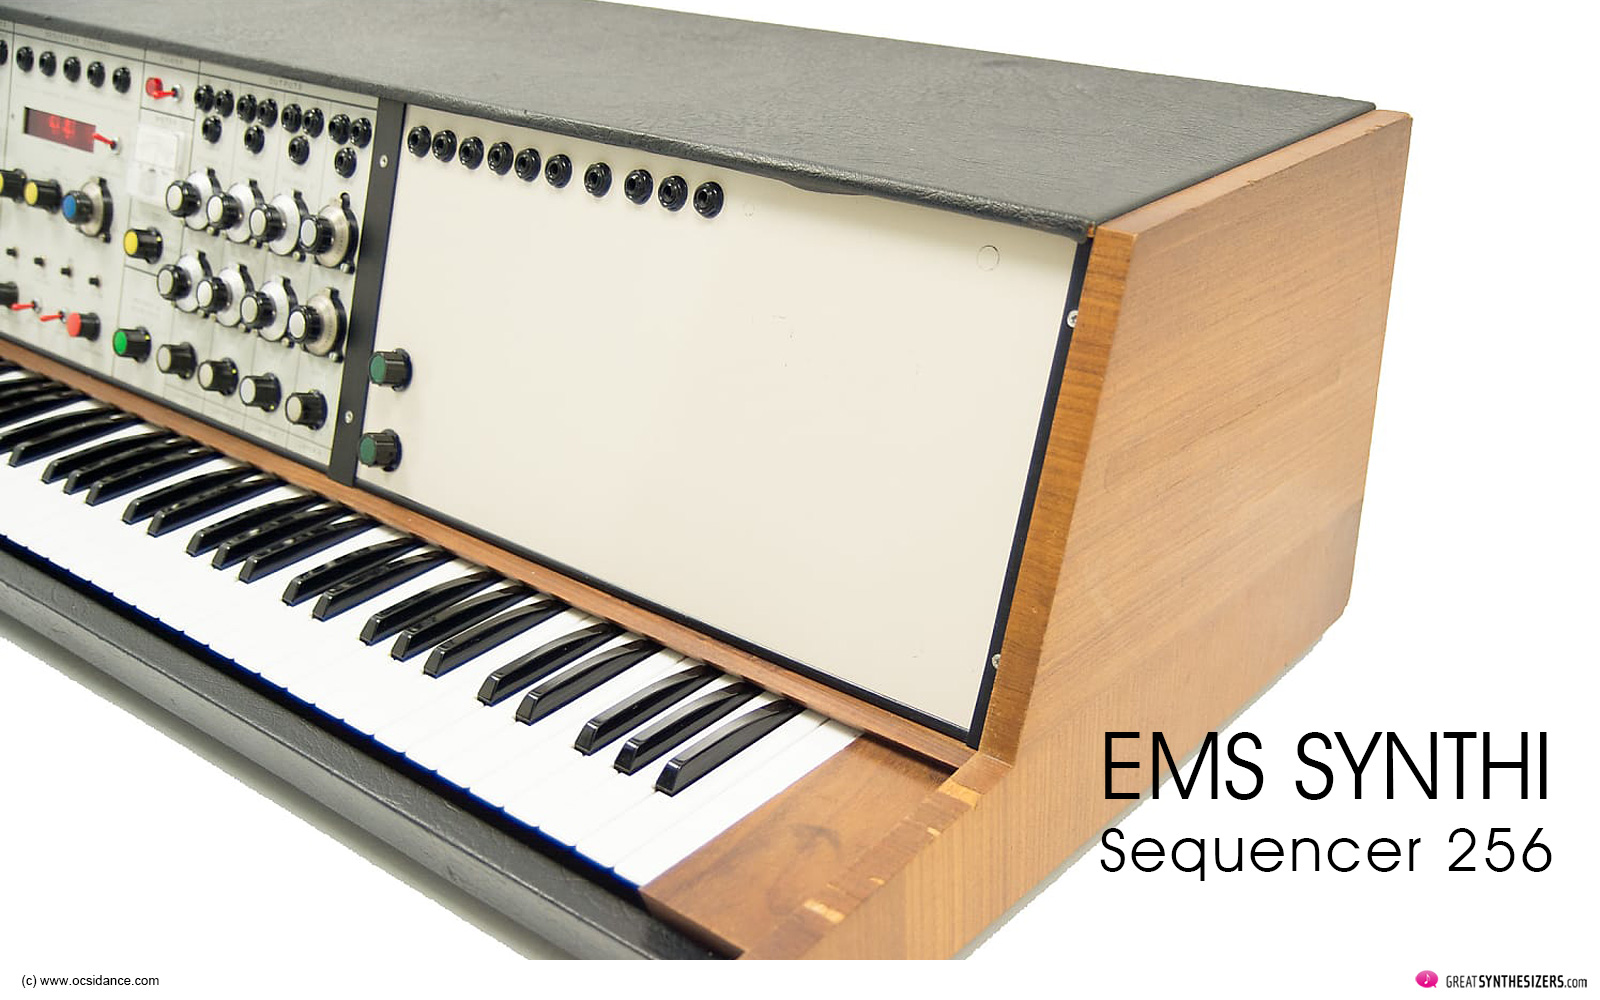 EMS SYNTHI Sequencer 256